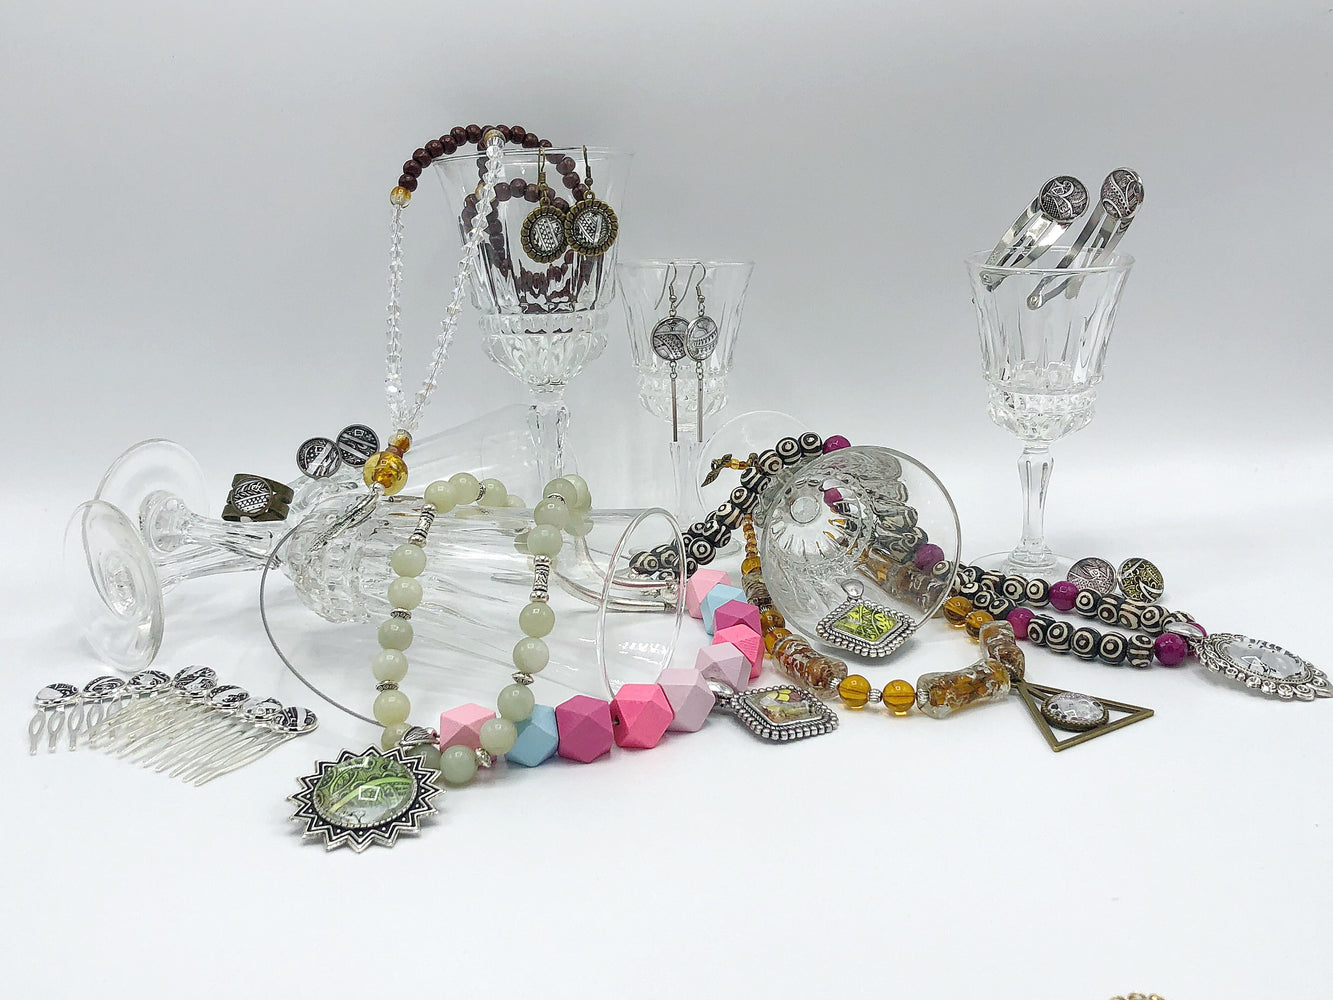 One of a kind Necklaces, cufflinks, bracelets, earrings, hair ornaments and much more